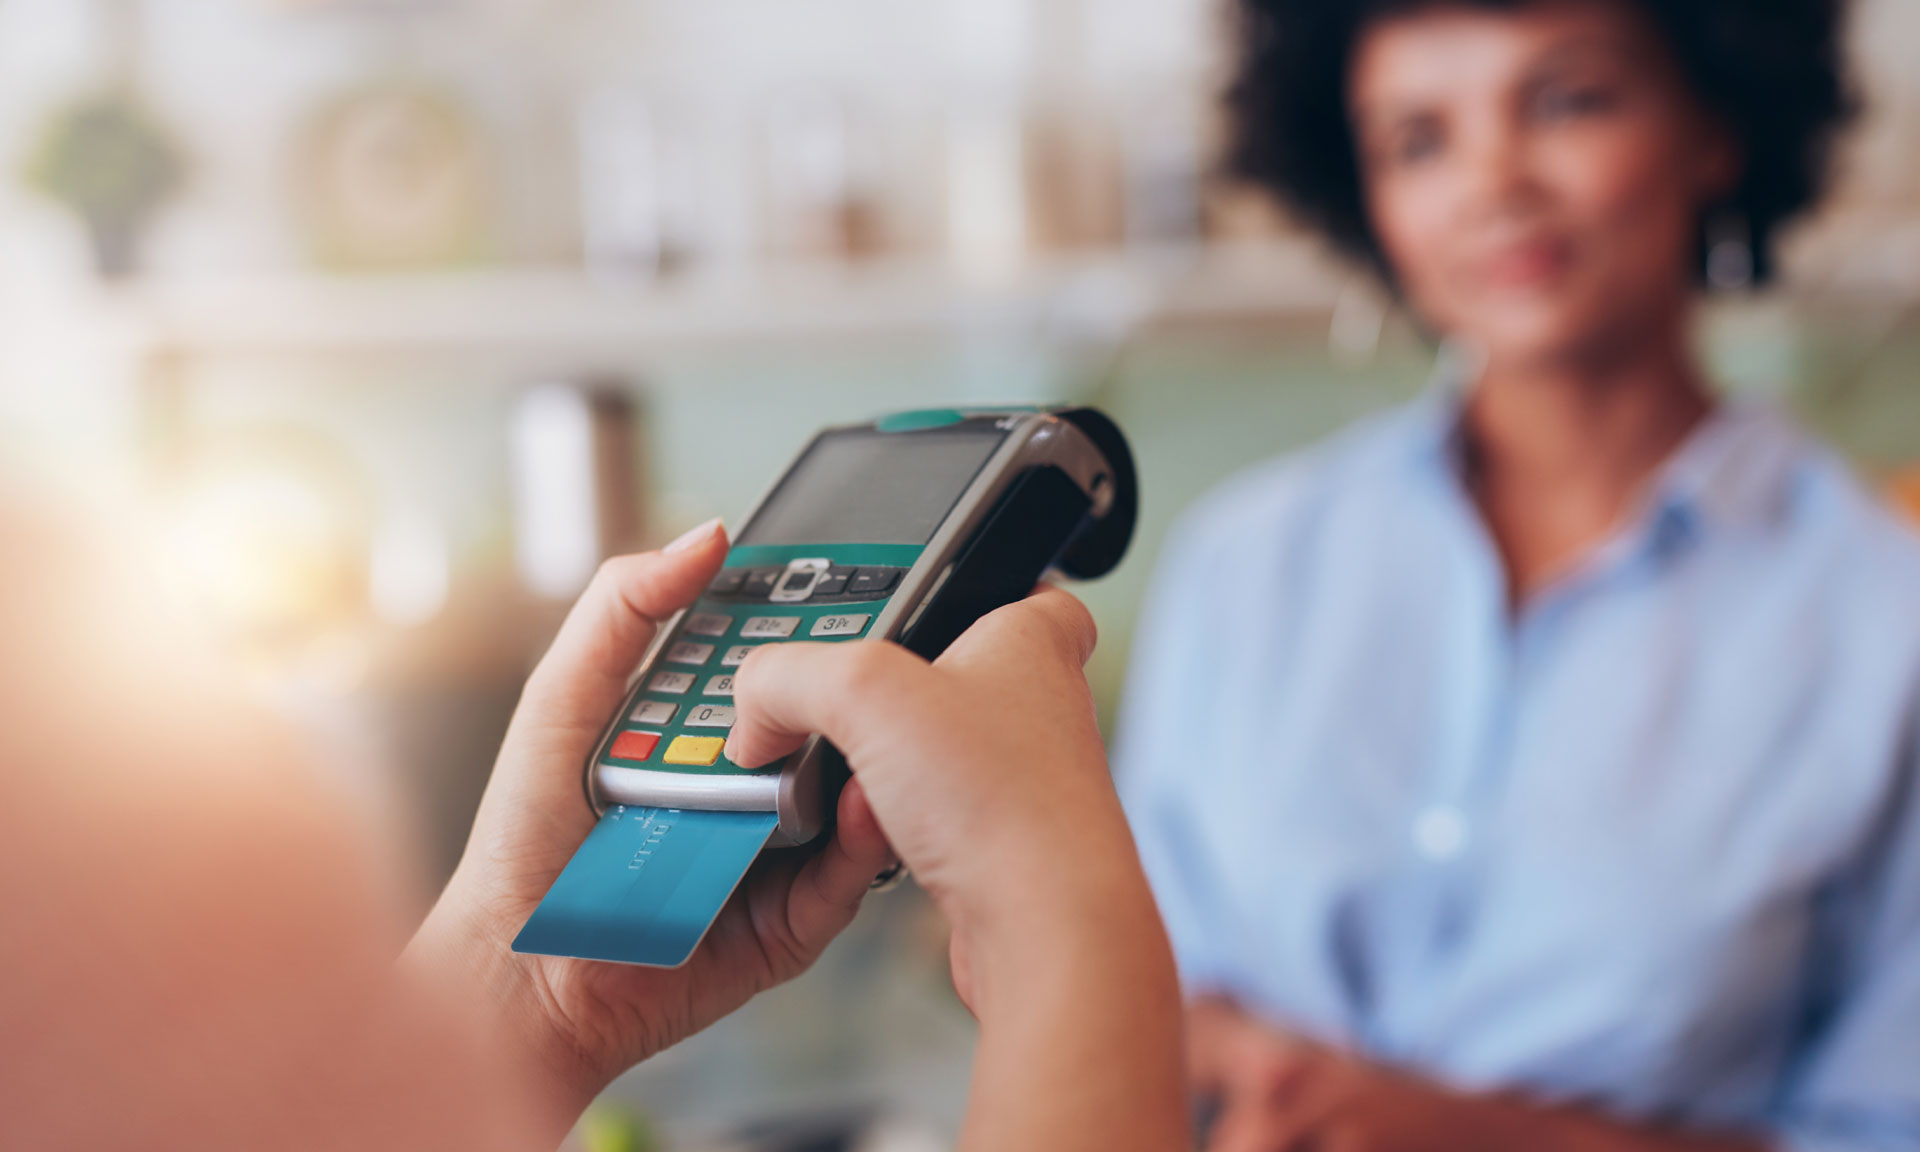 Paying on a card machine